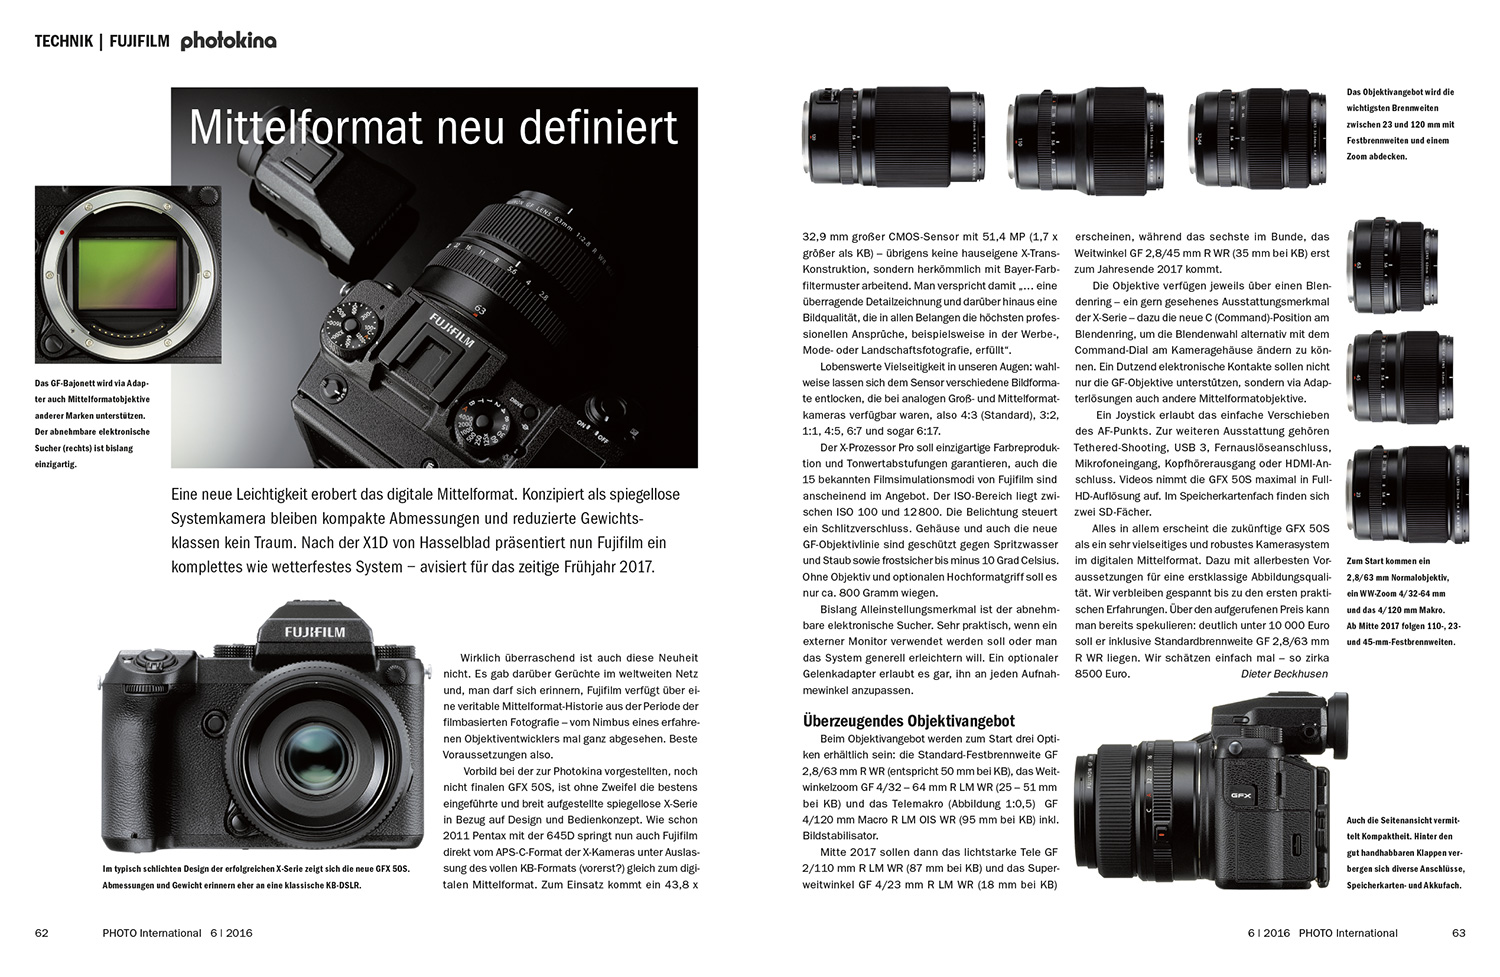 fujifilm-mittelformat-photo-international-6-2016